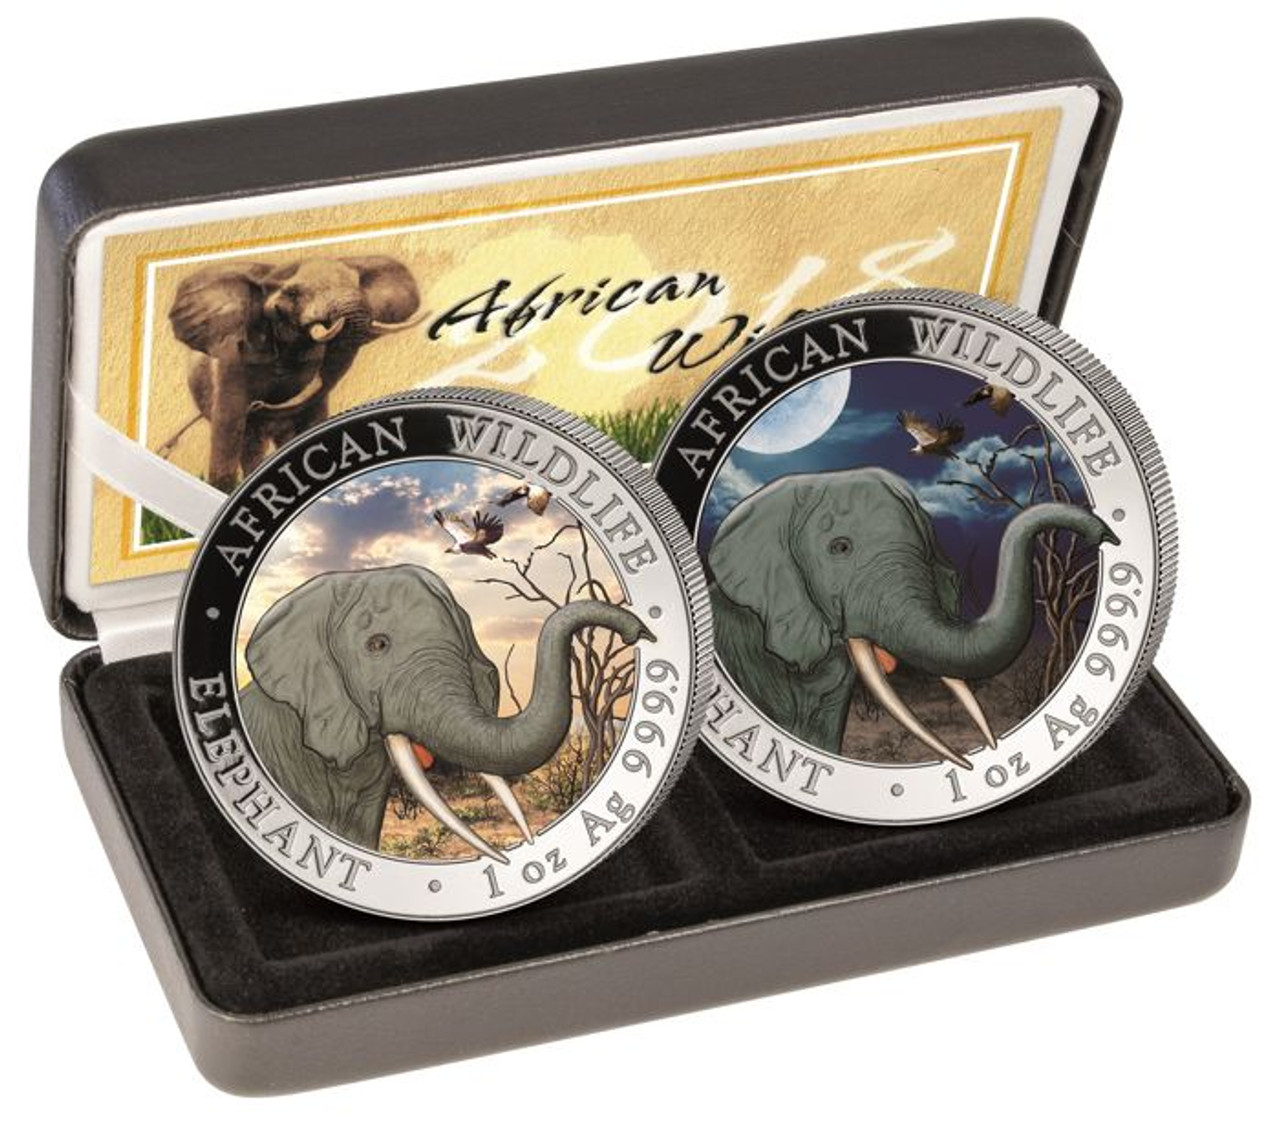 2 Coin 2017 Somalian ELEPHANT DAY /& NIGHT Colorized Silver AFRICAN WILDLIFE